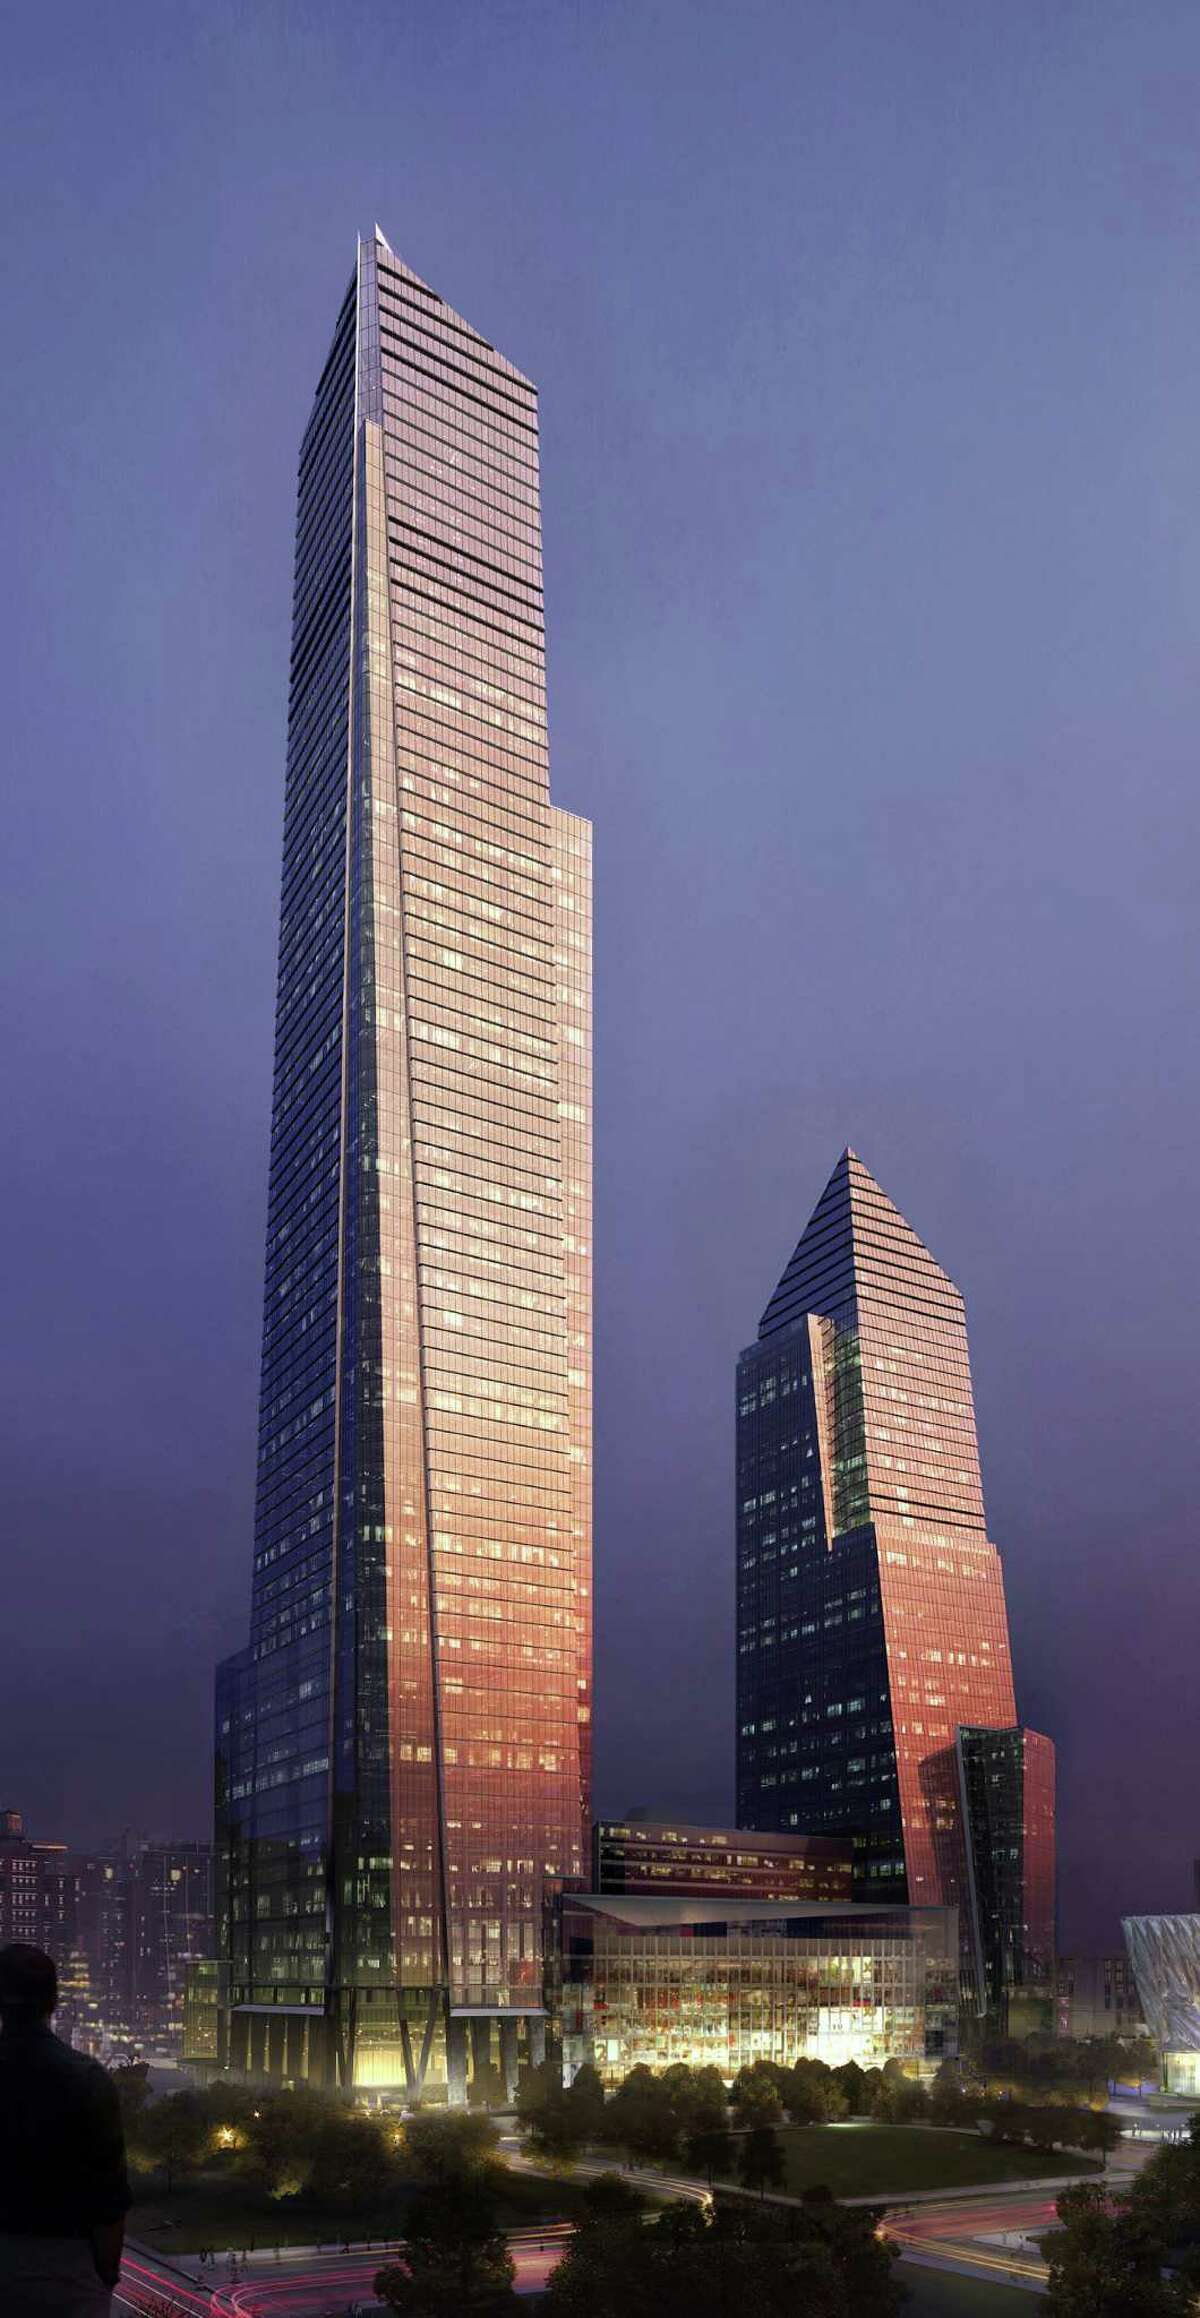 In this artist rendering created by MIR and released by Hudson Yards, the section of the development named the Ã'Â